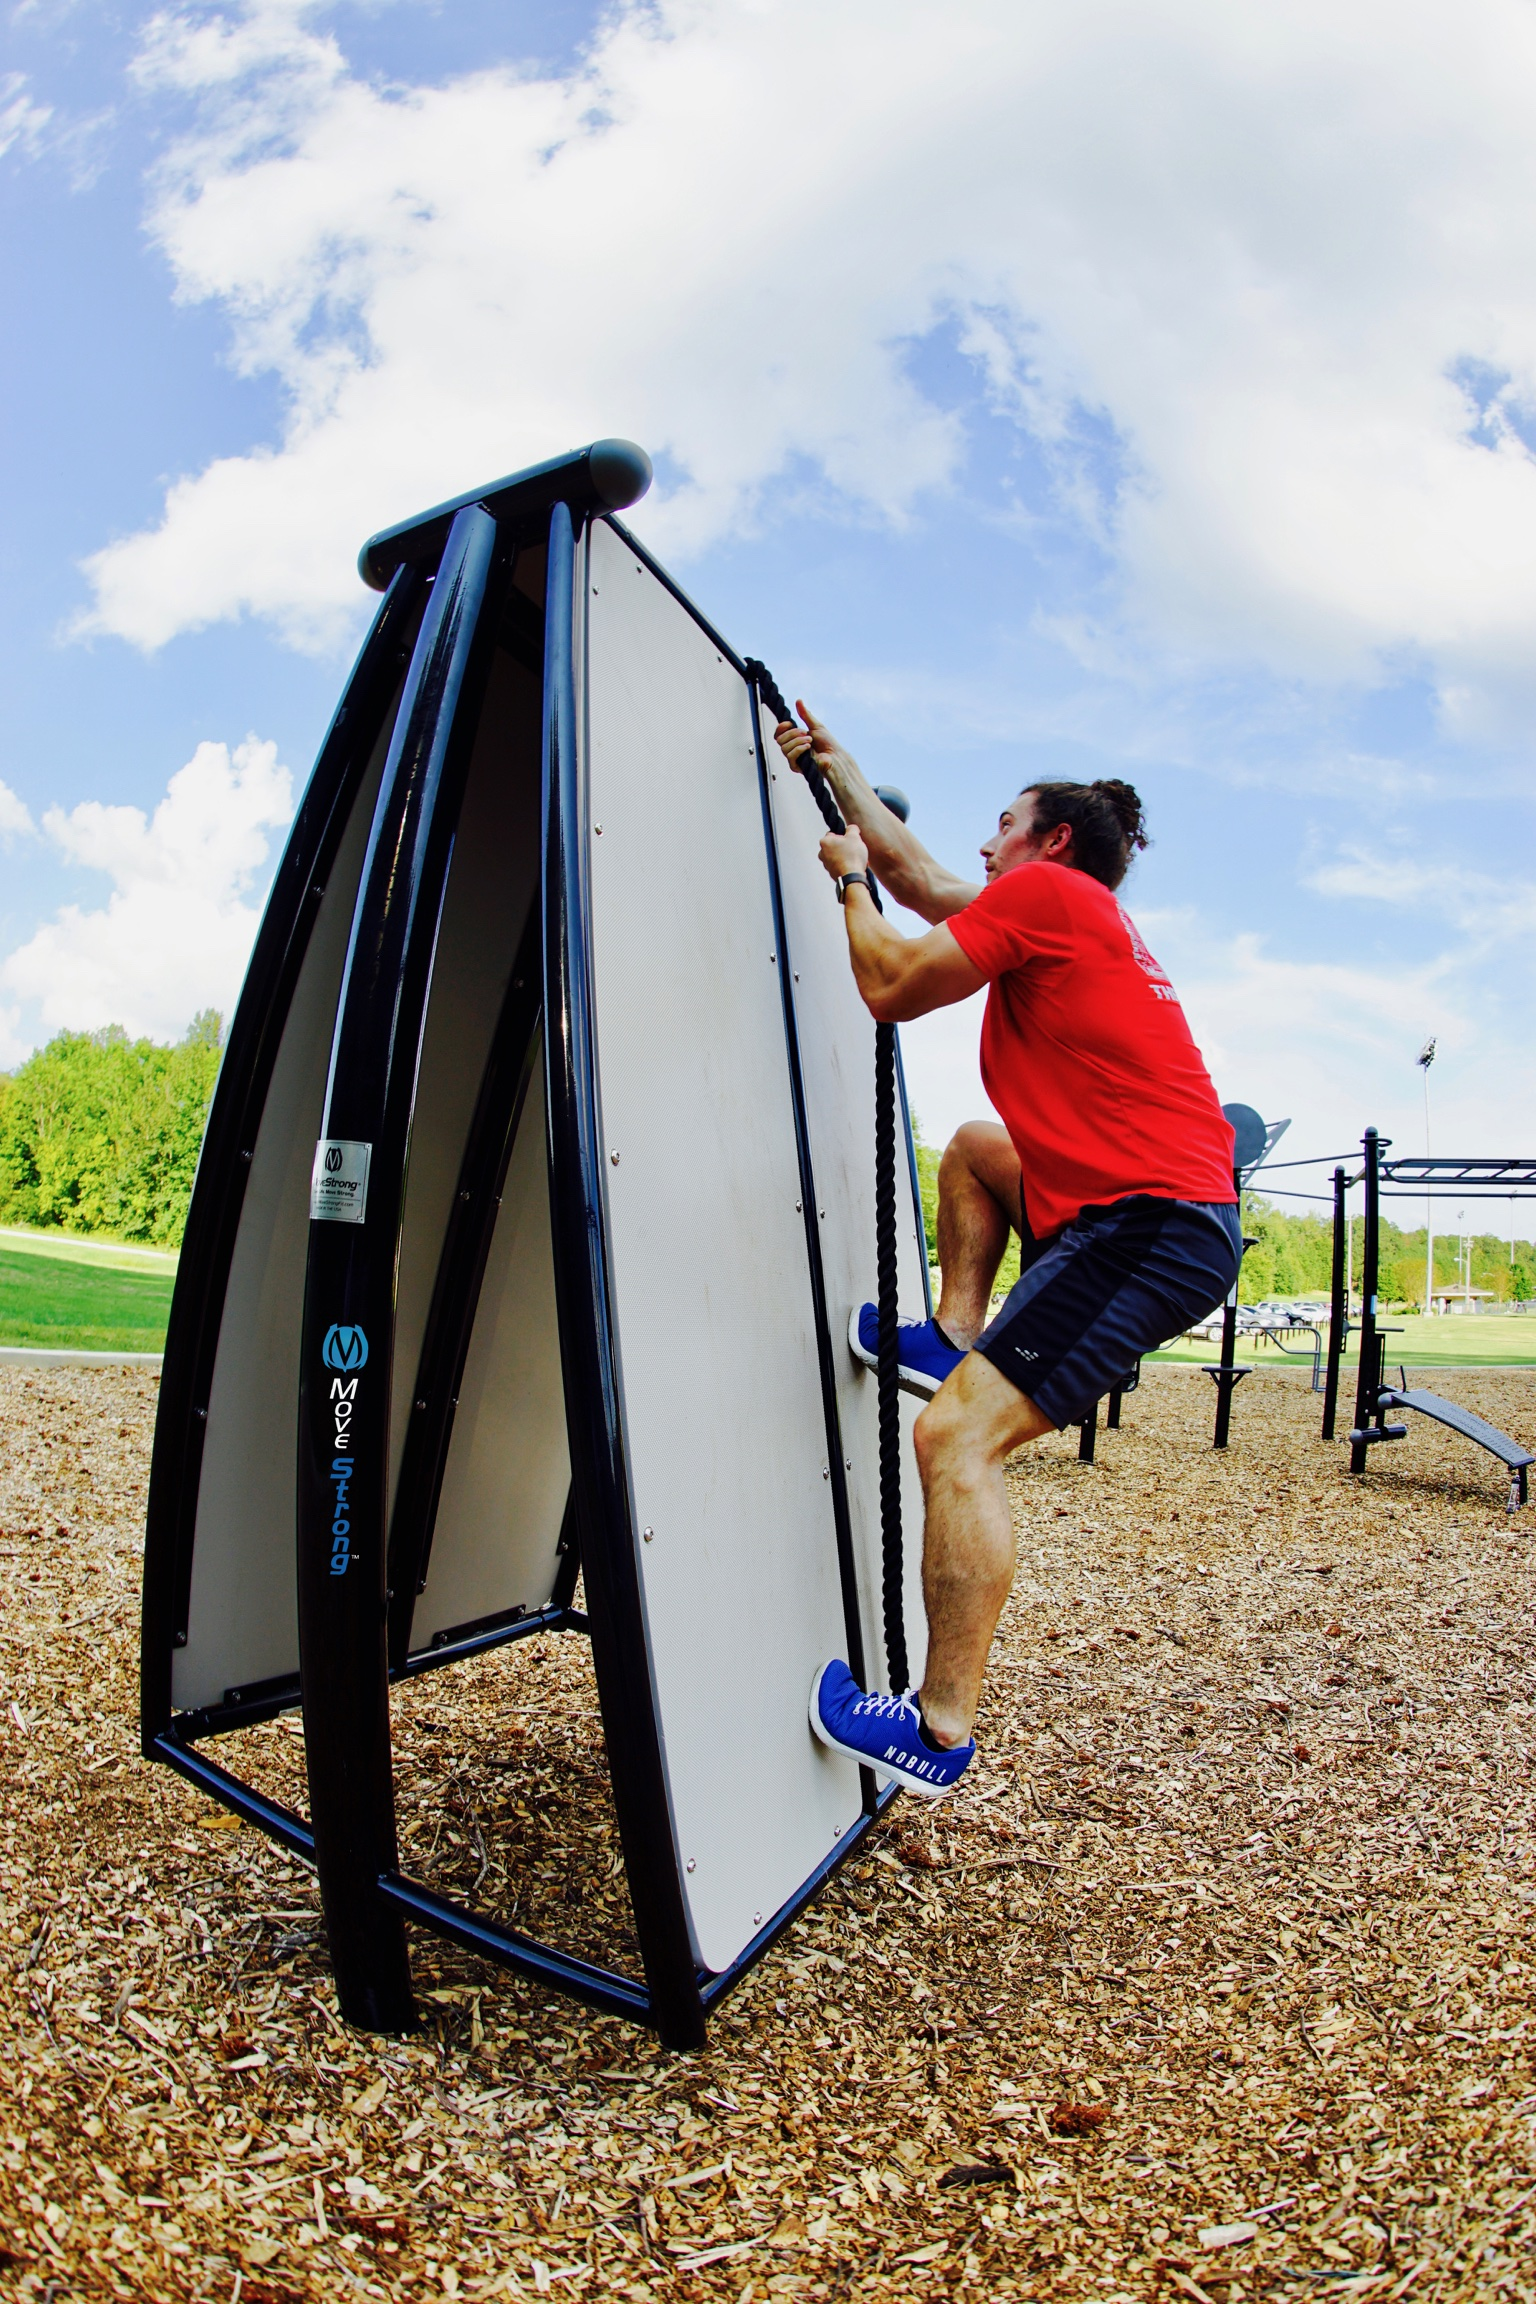 Copy of A-Wall Climber Obstacle